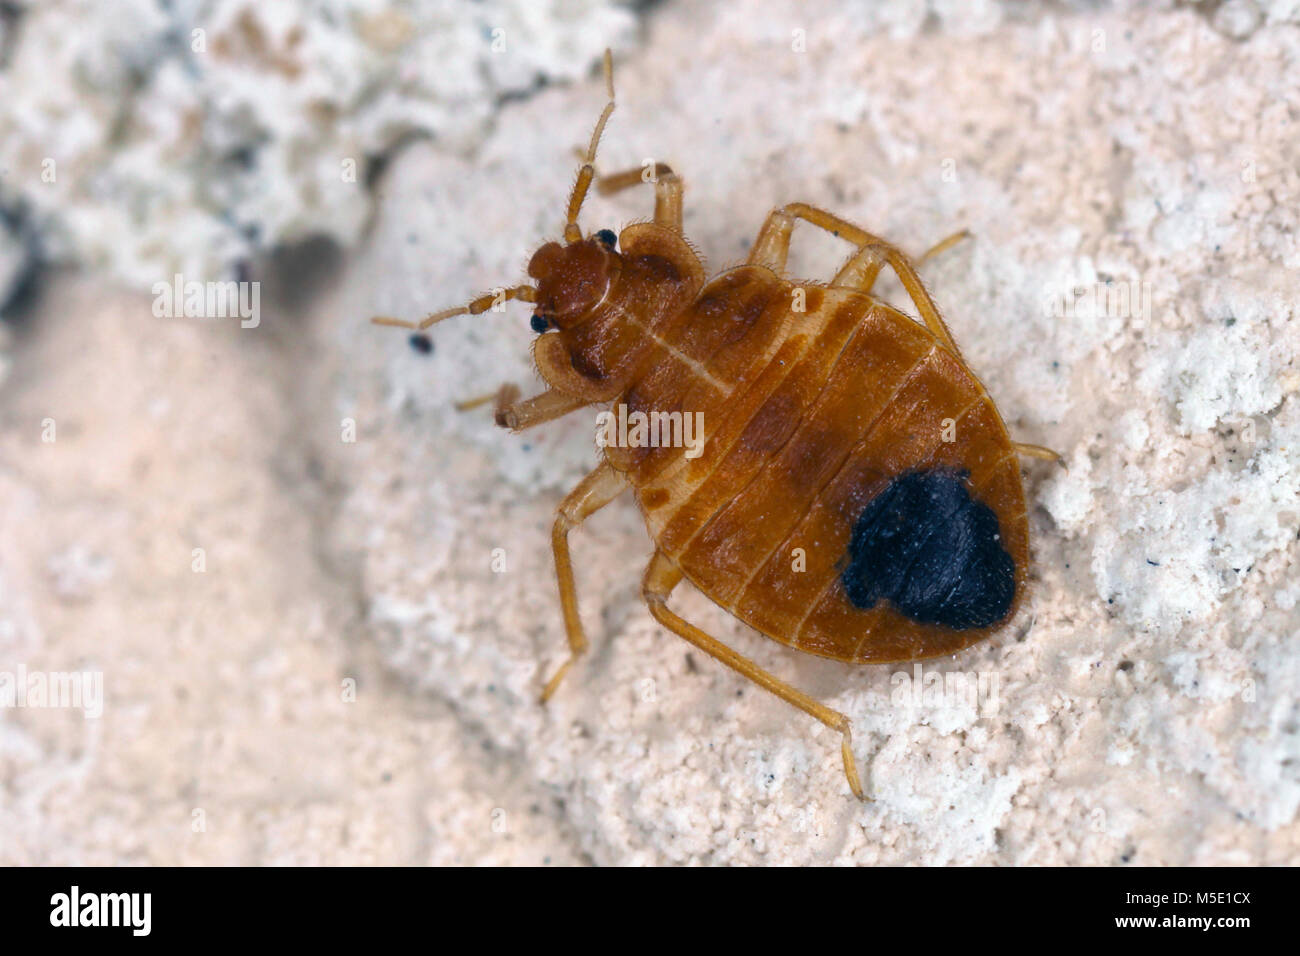 Bed bug Cimex lectularius parasitic insects of the cimicid family feeds on human blood. Insect on the wall of the - Stock Image